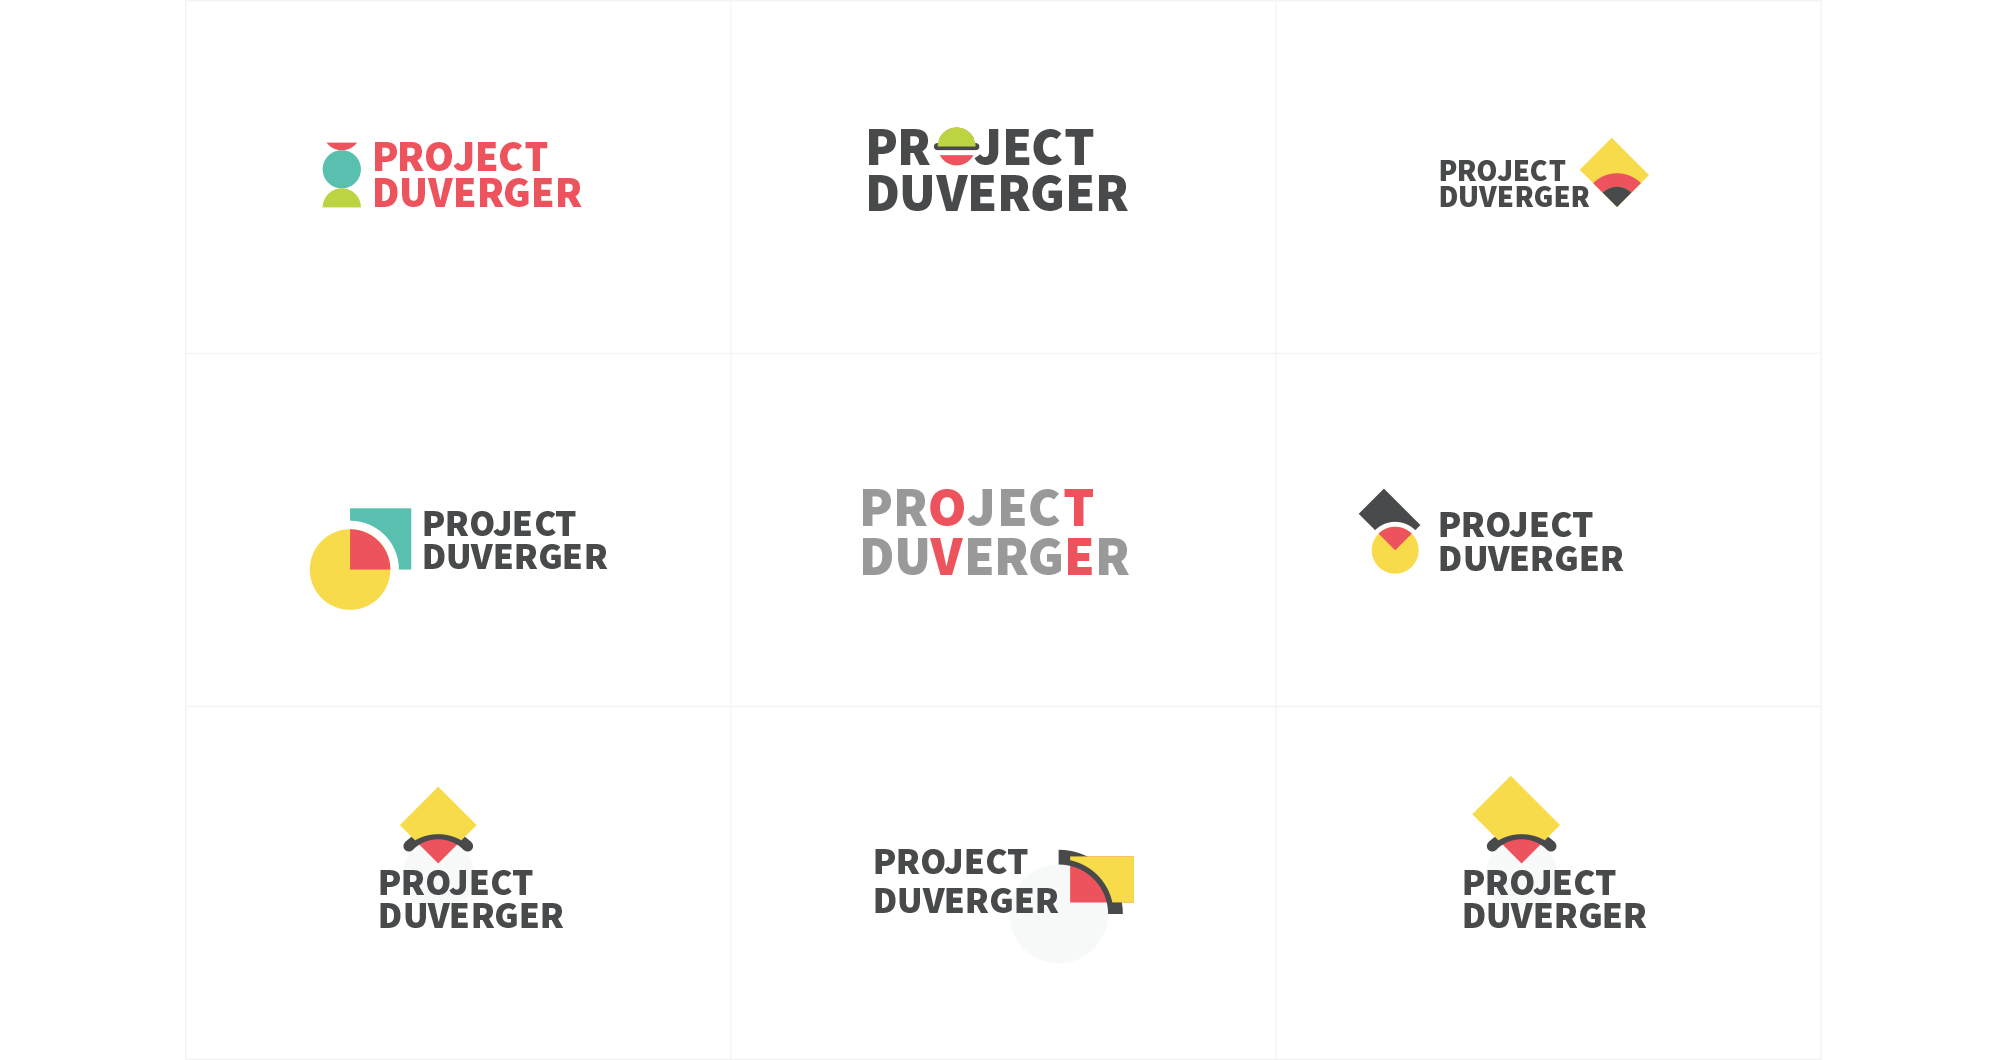 Project Duverger Logo Design Sketches